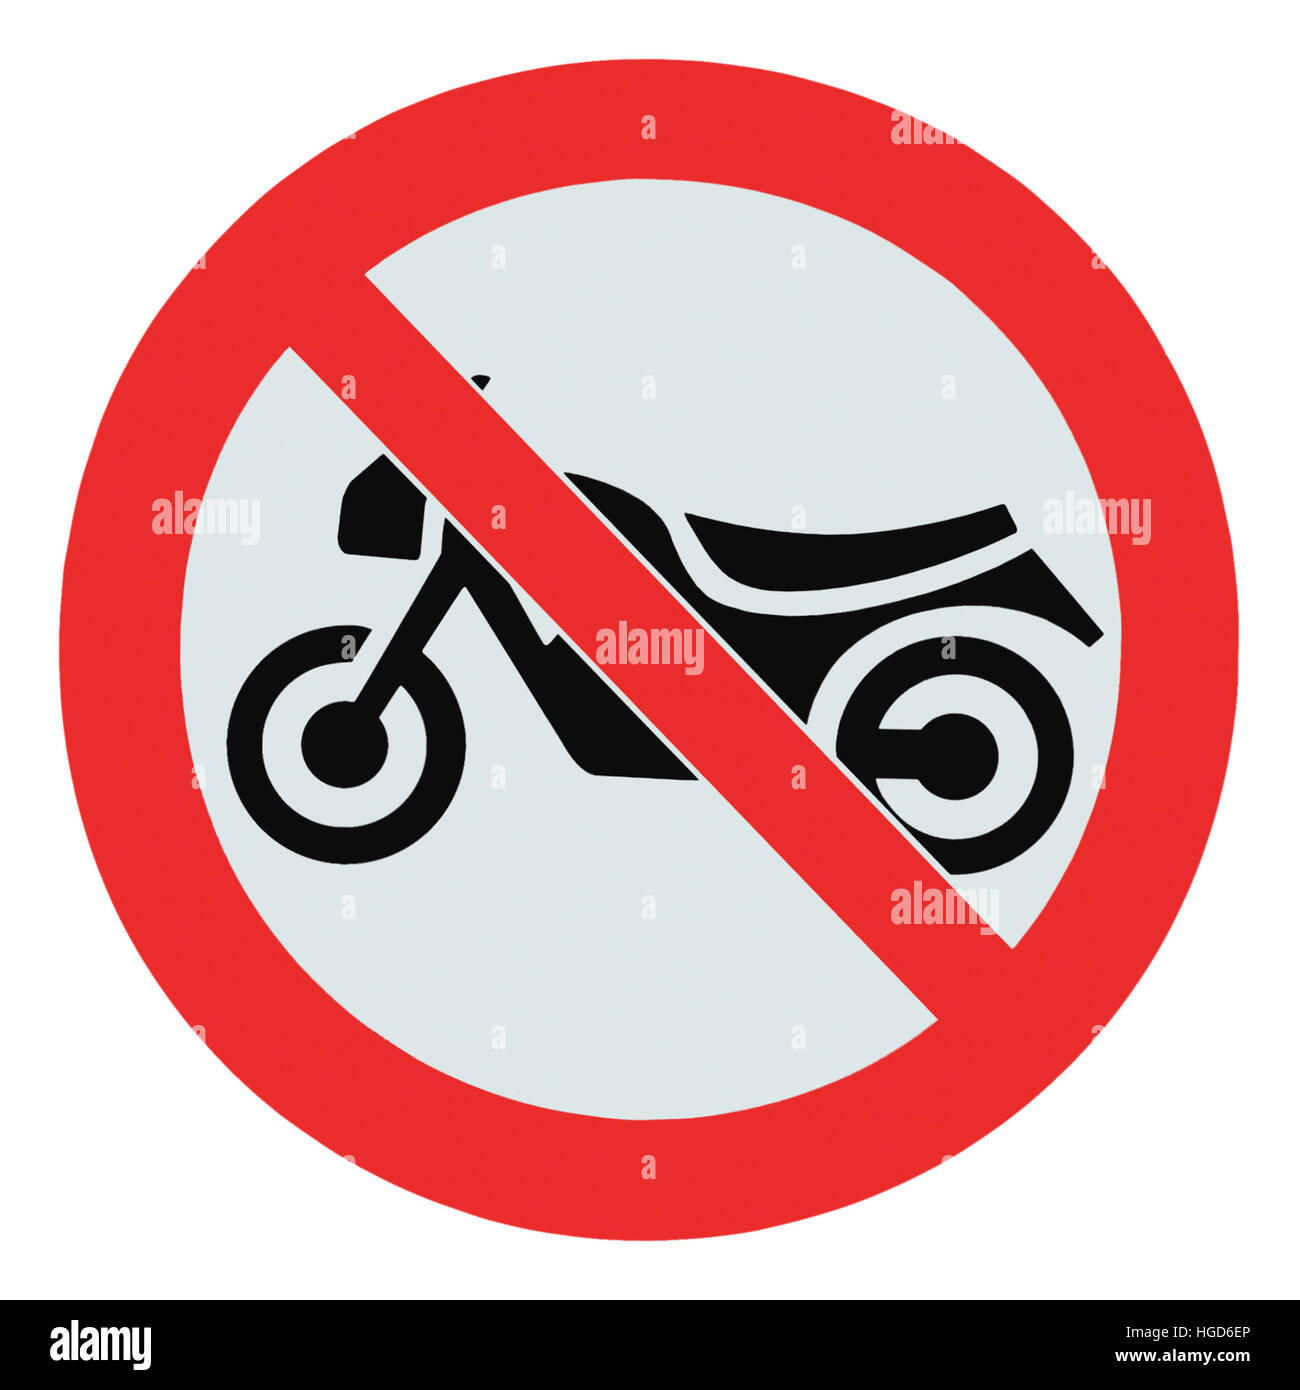 No motorcycle sign, isolated no bikes allowed prohibition zone warning signage icon macro closeup - Stock Image